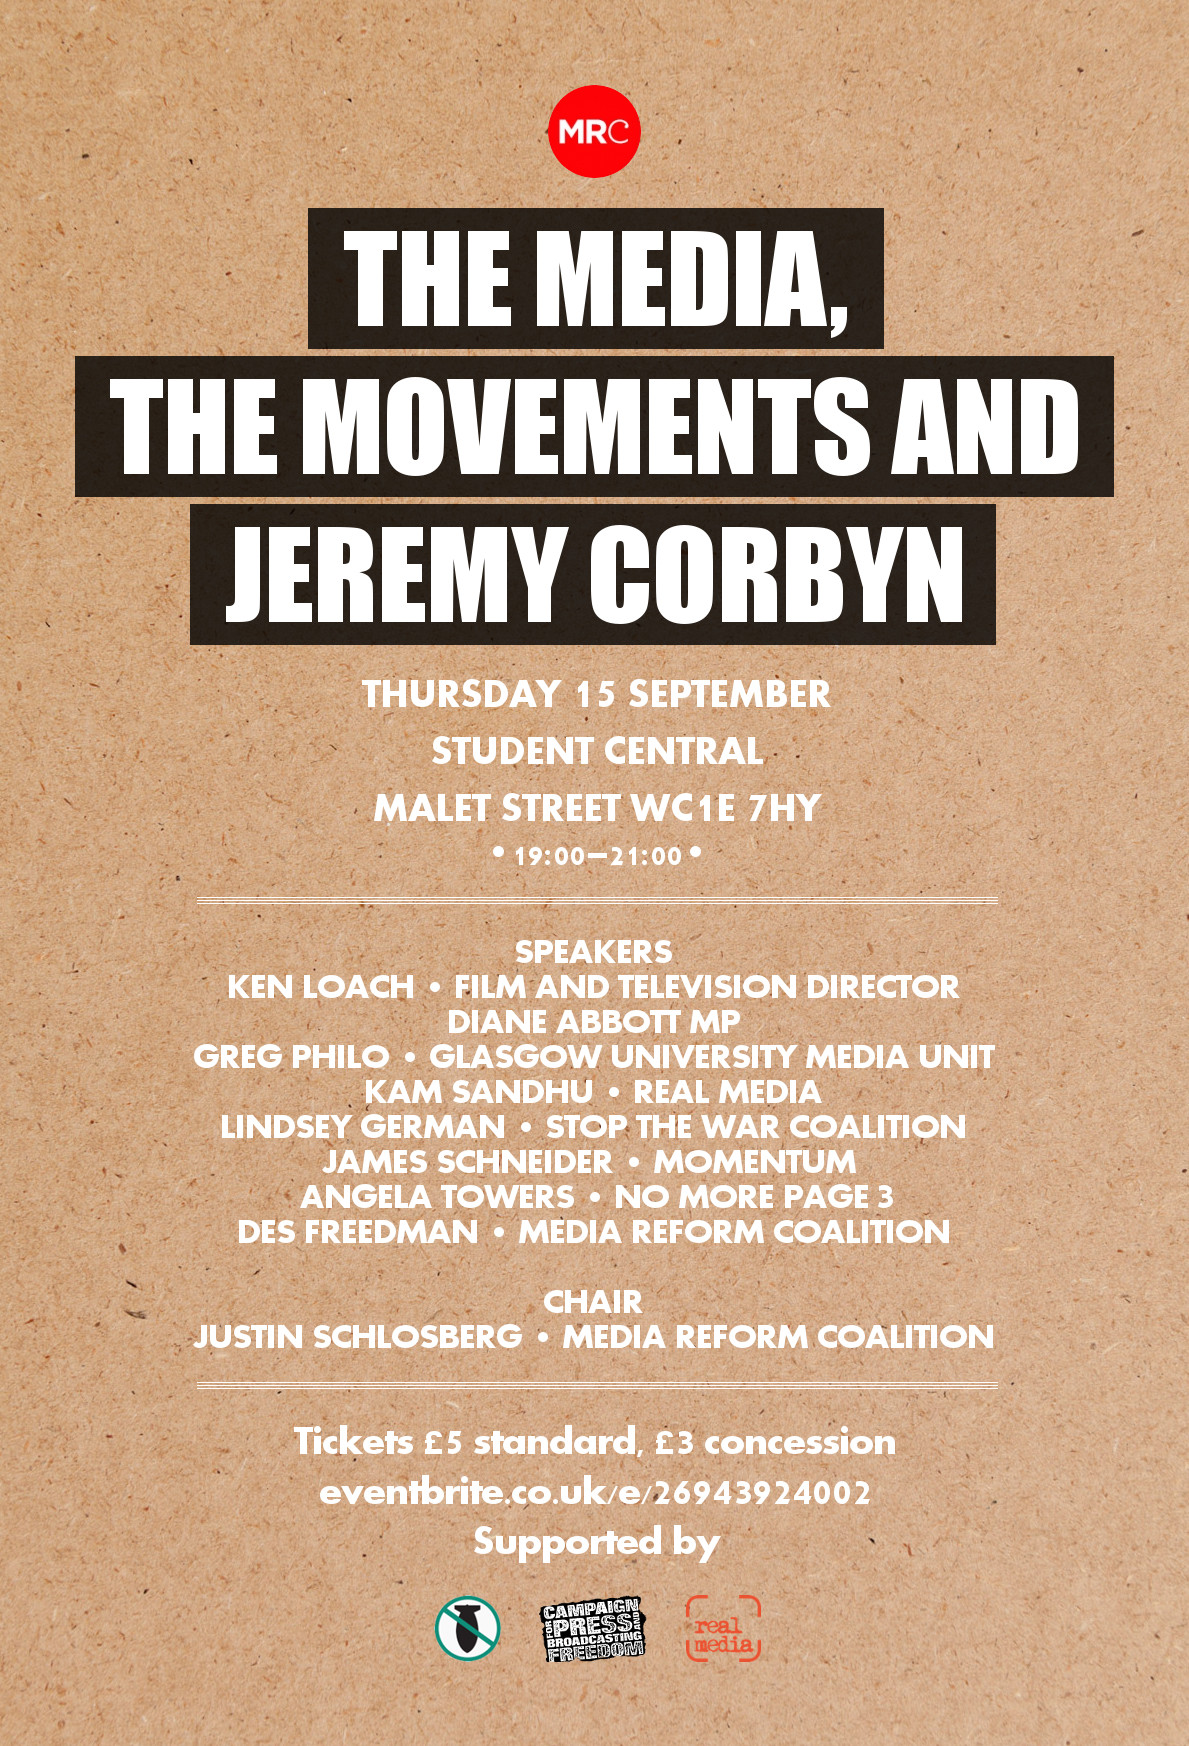 The media, the movements and Jeremy Corbyn event flyer